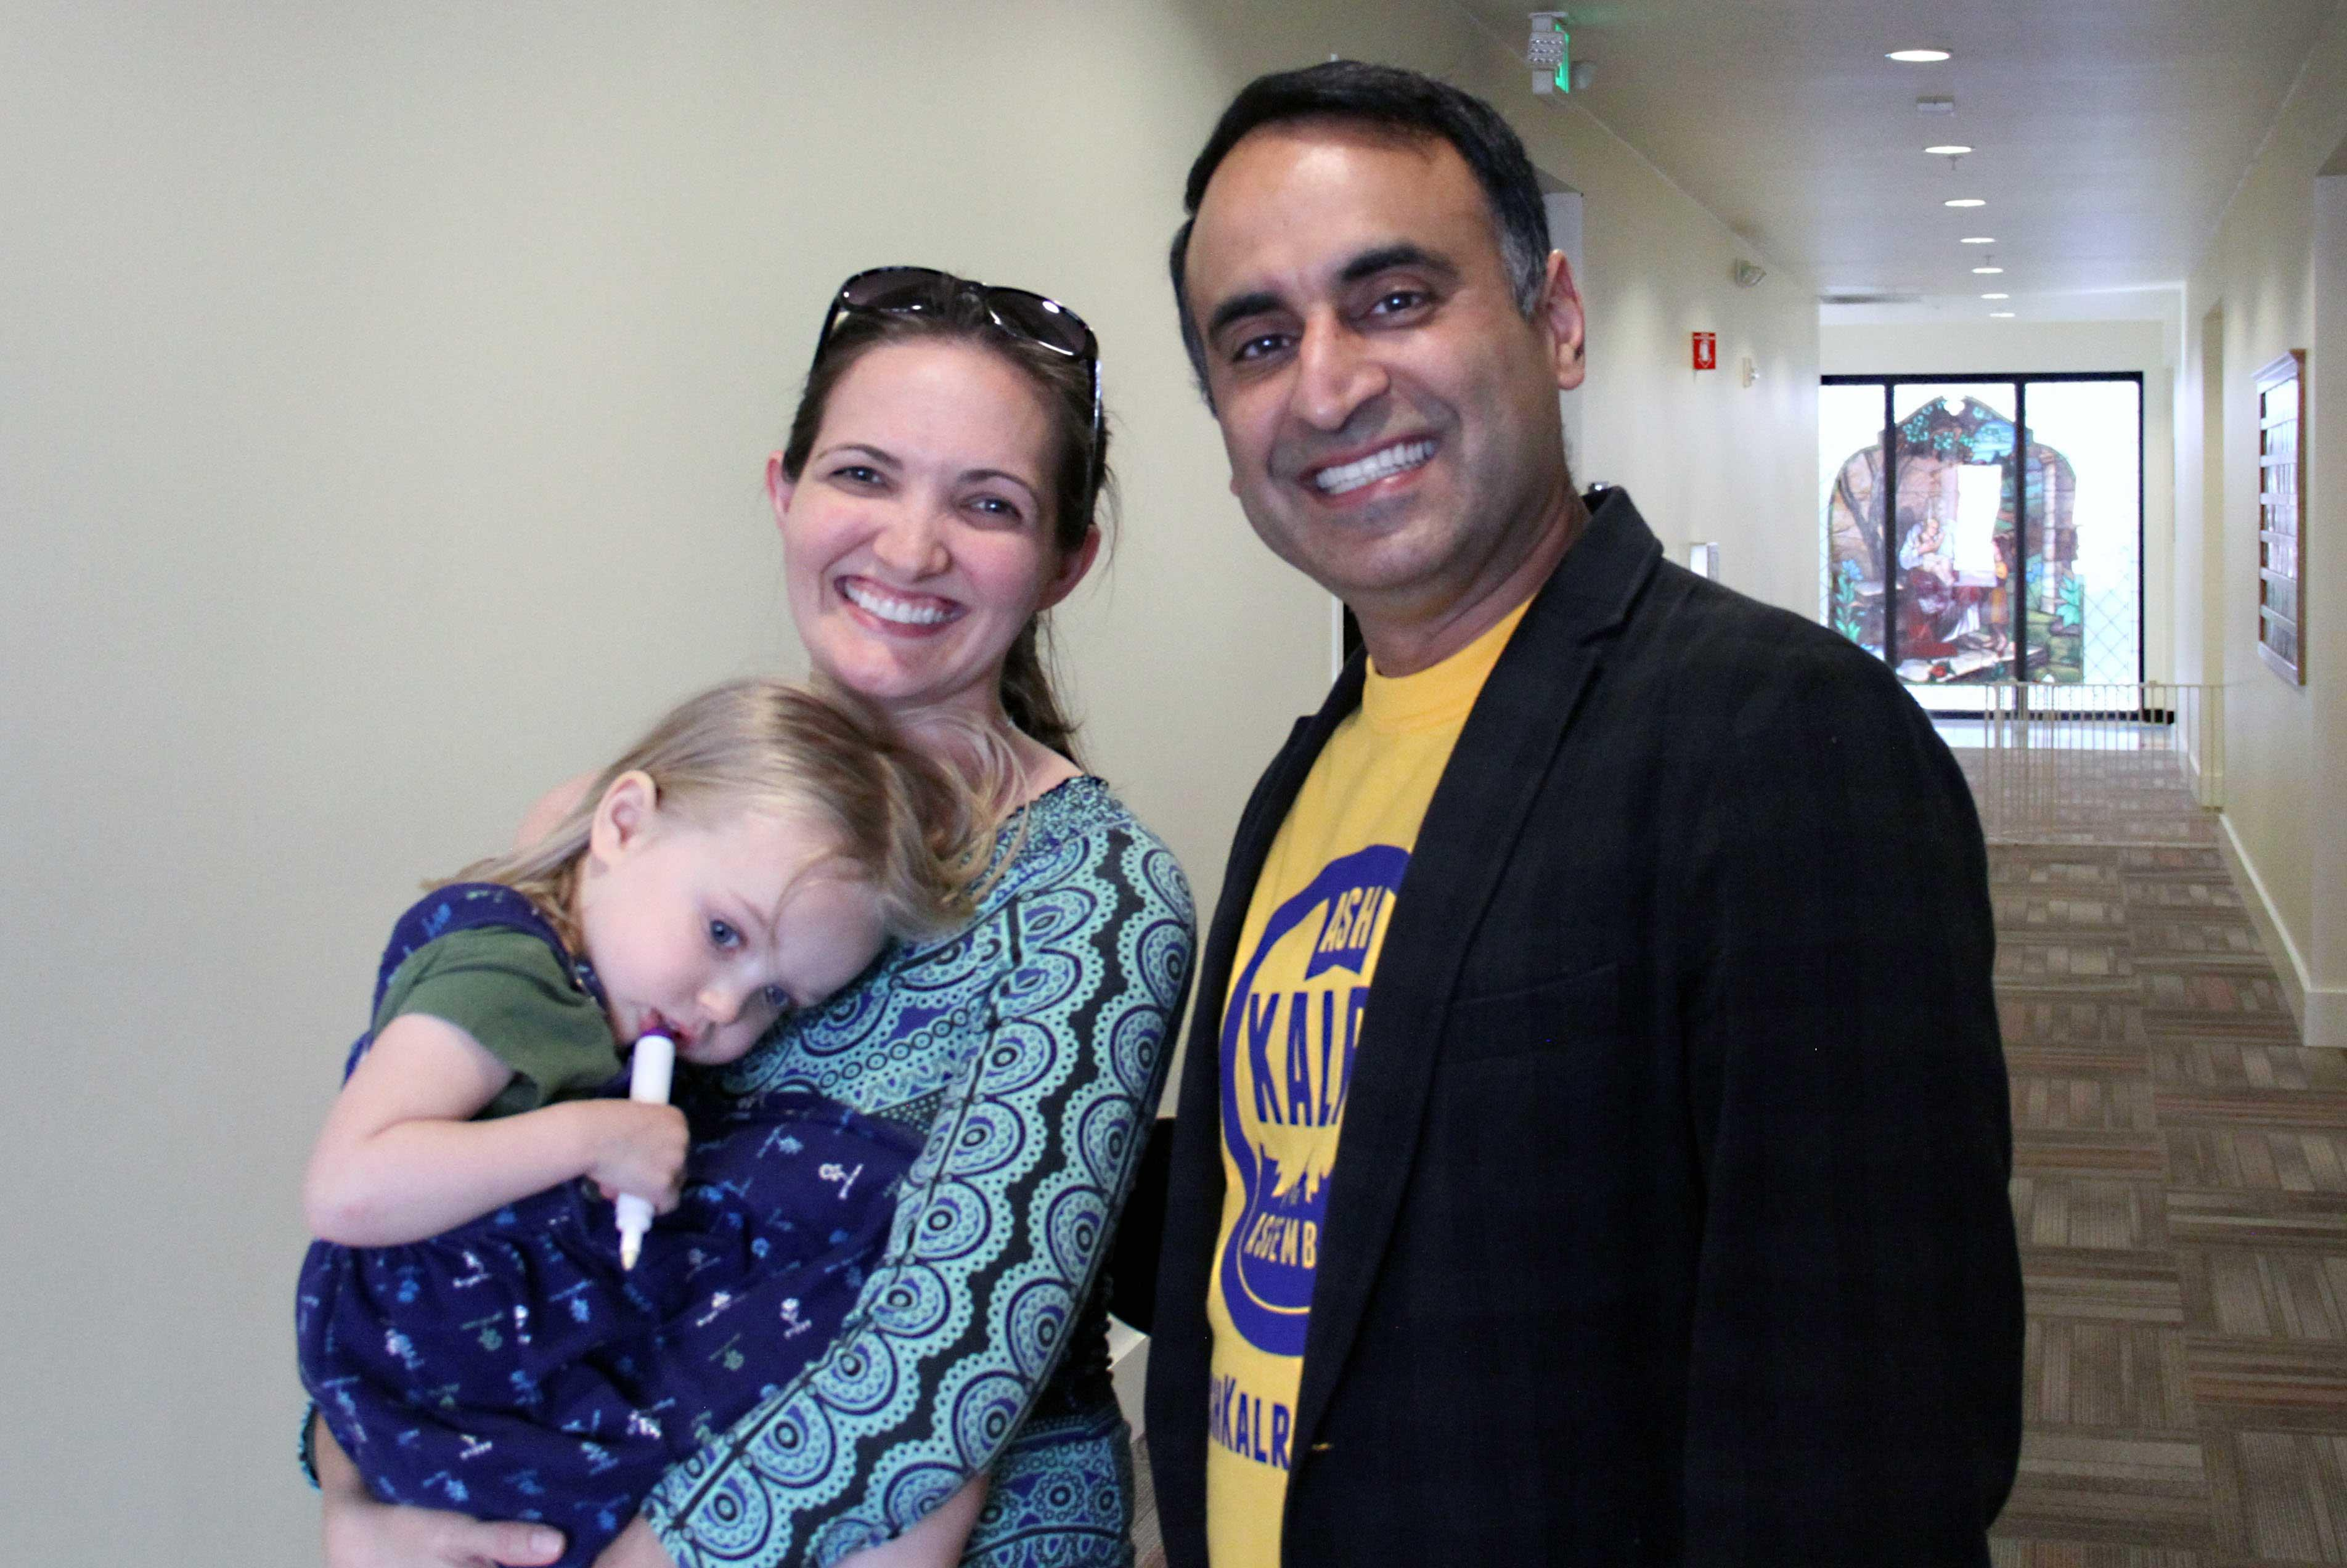 An AFSCME Local 101 member with San Jose City Councilman Ash Kalra, who is running for California State Assembly.